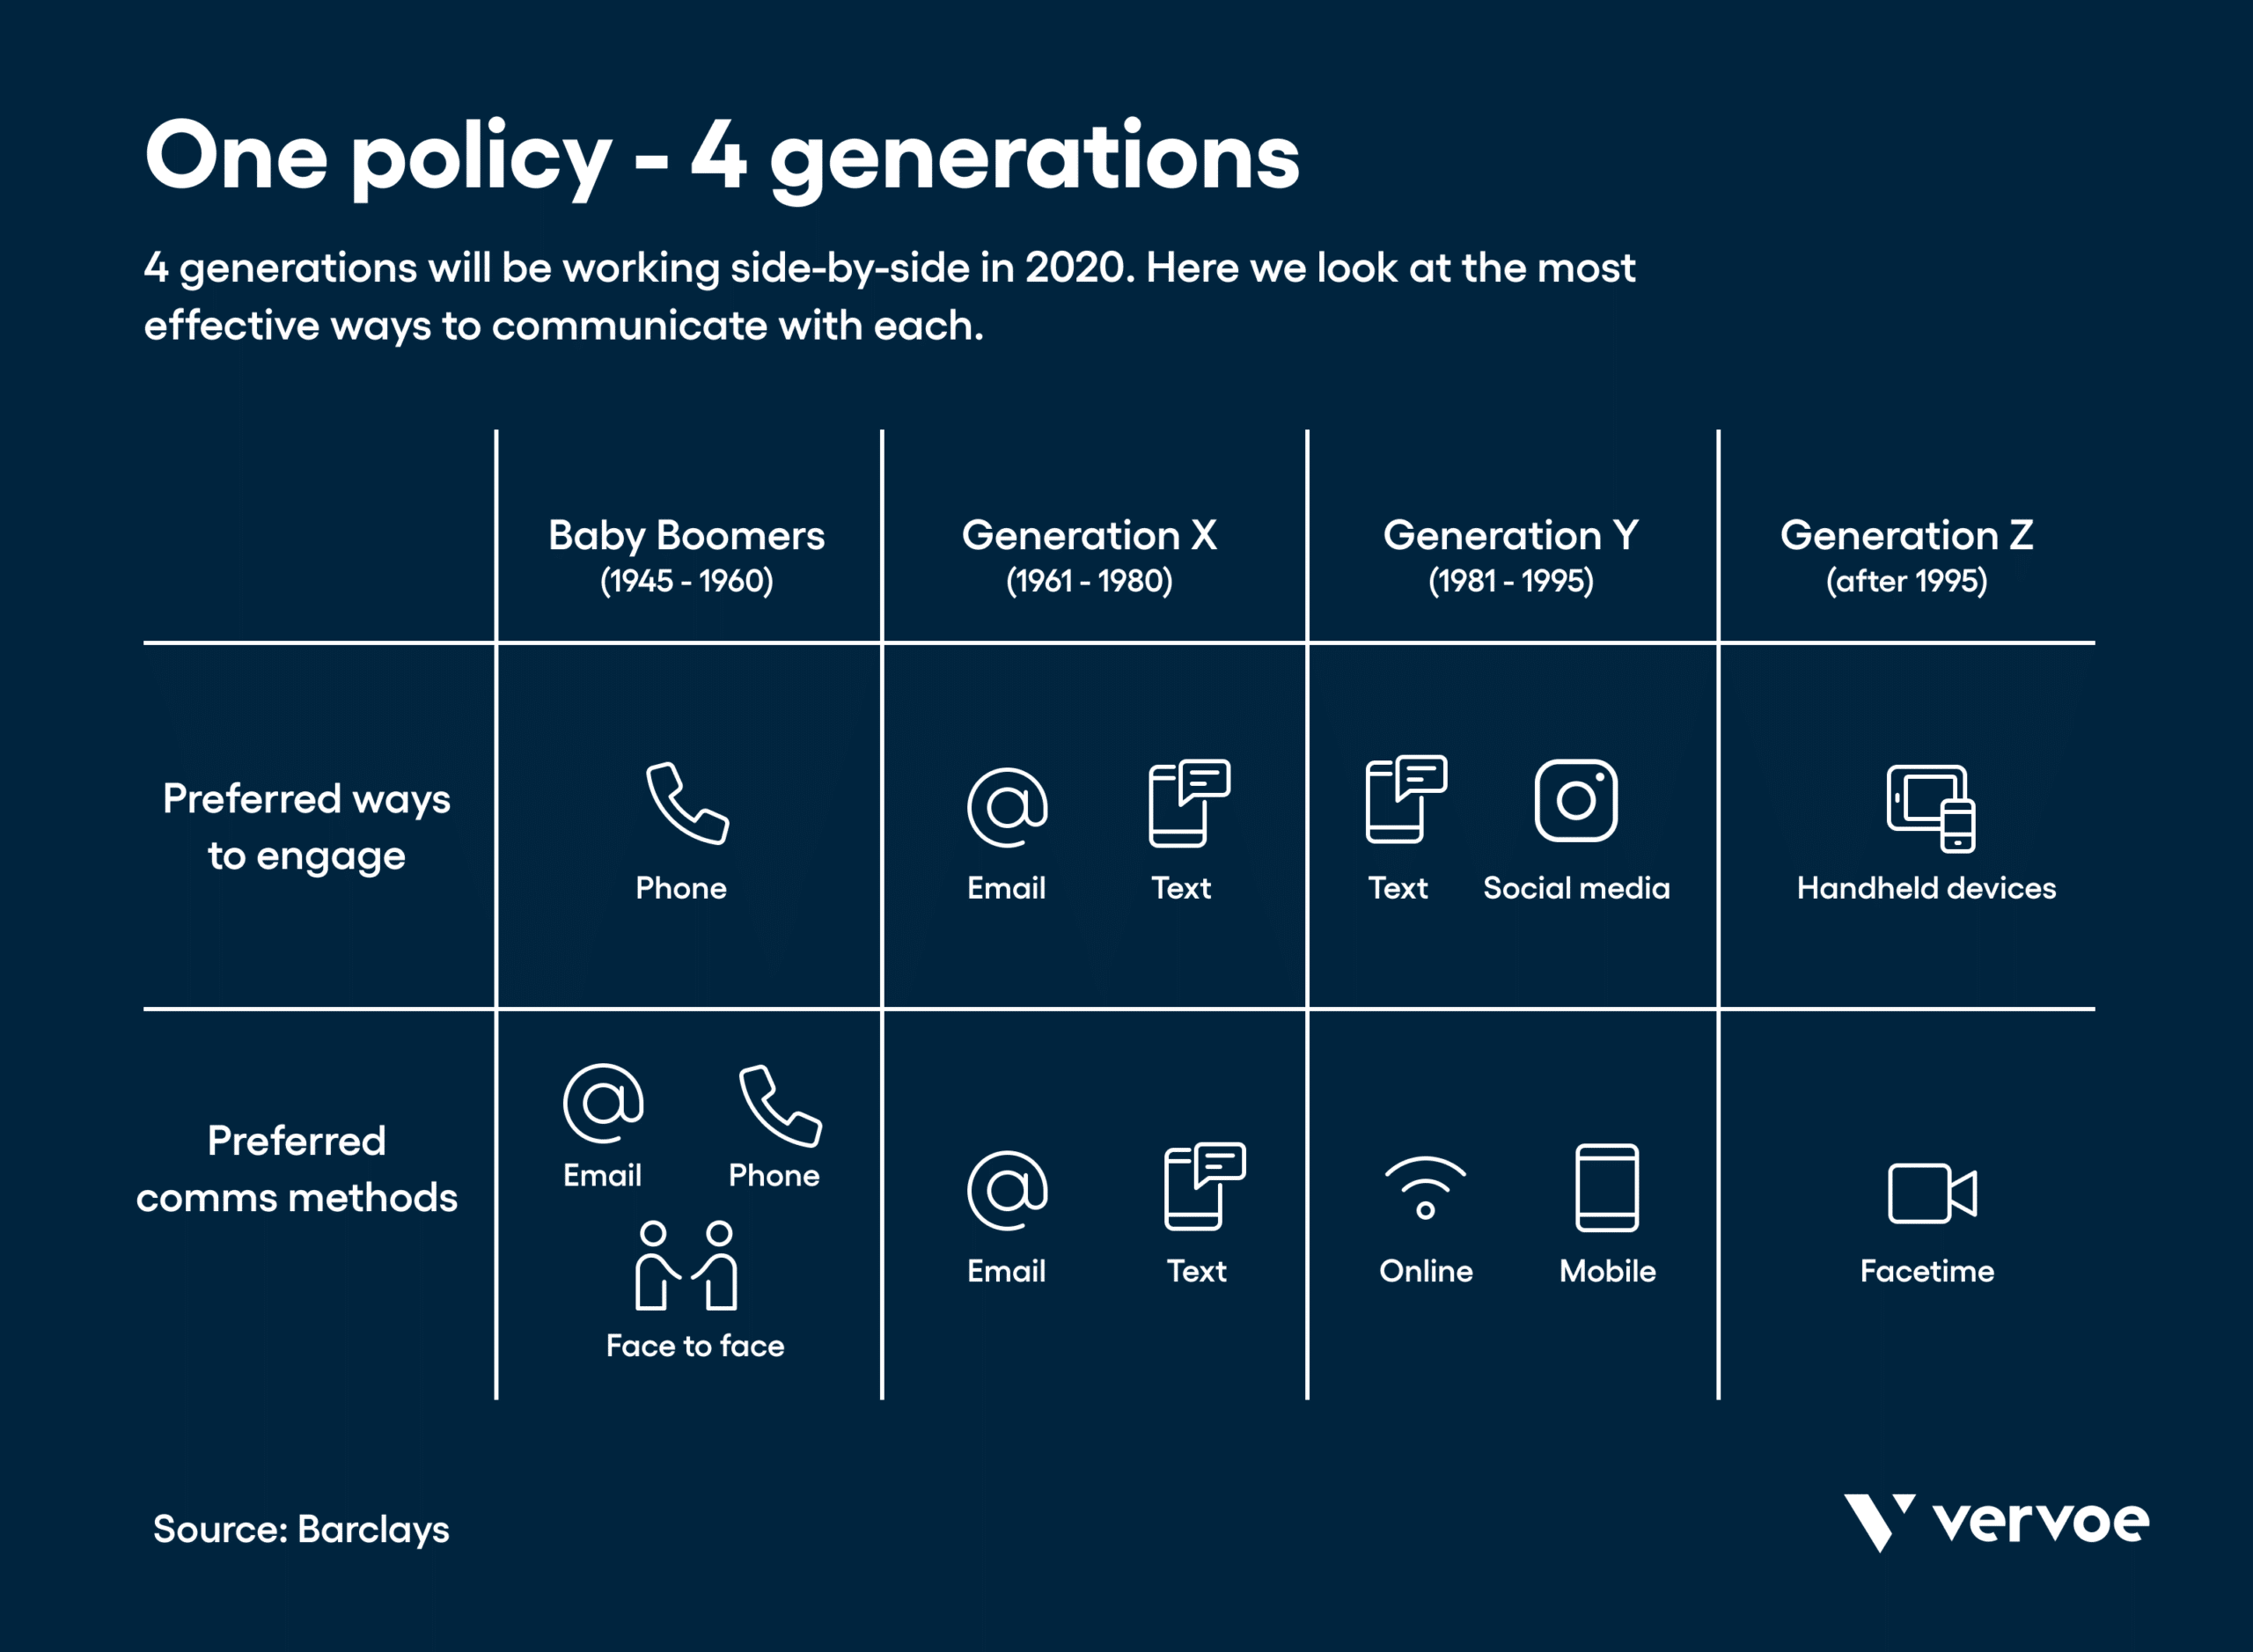 Infographic showing how to communicate with each generation